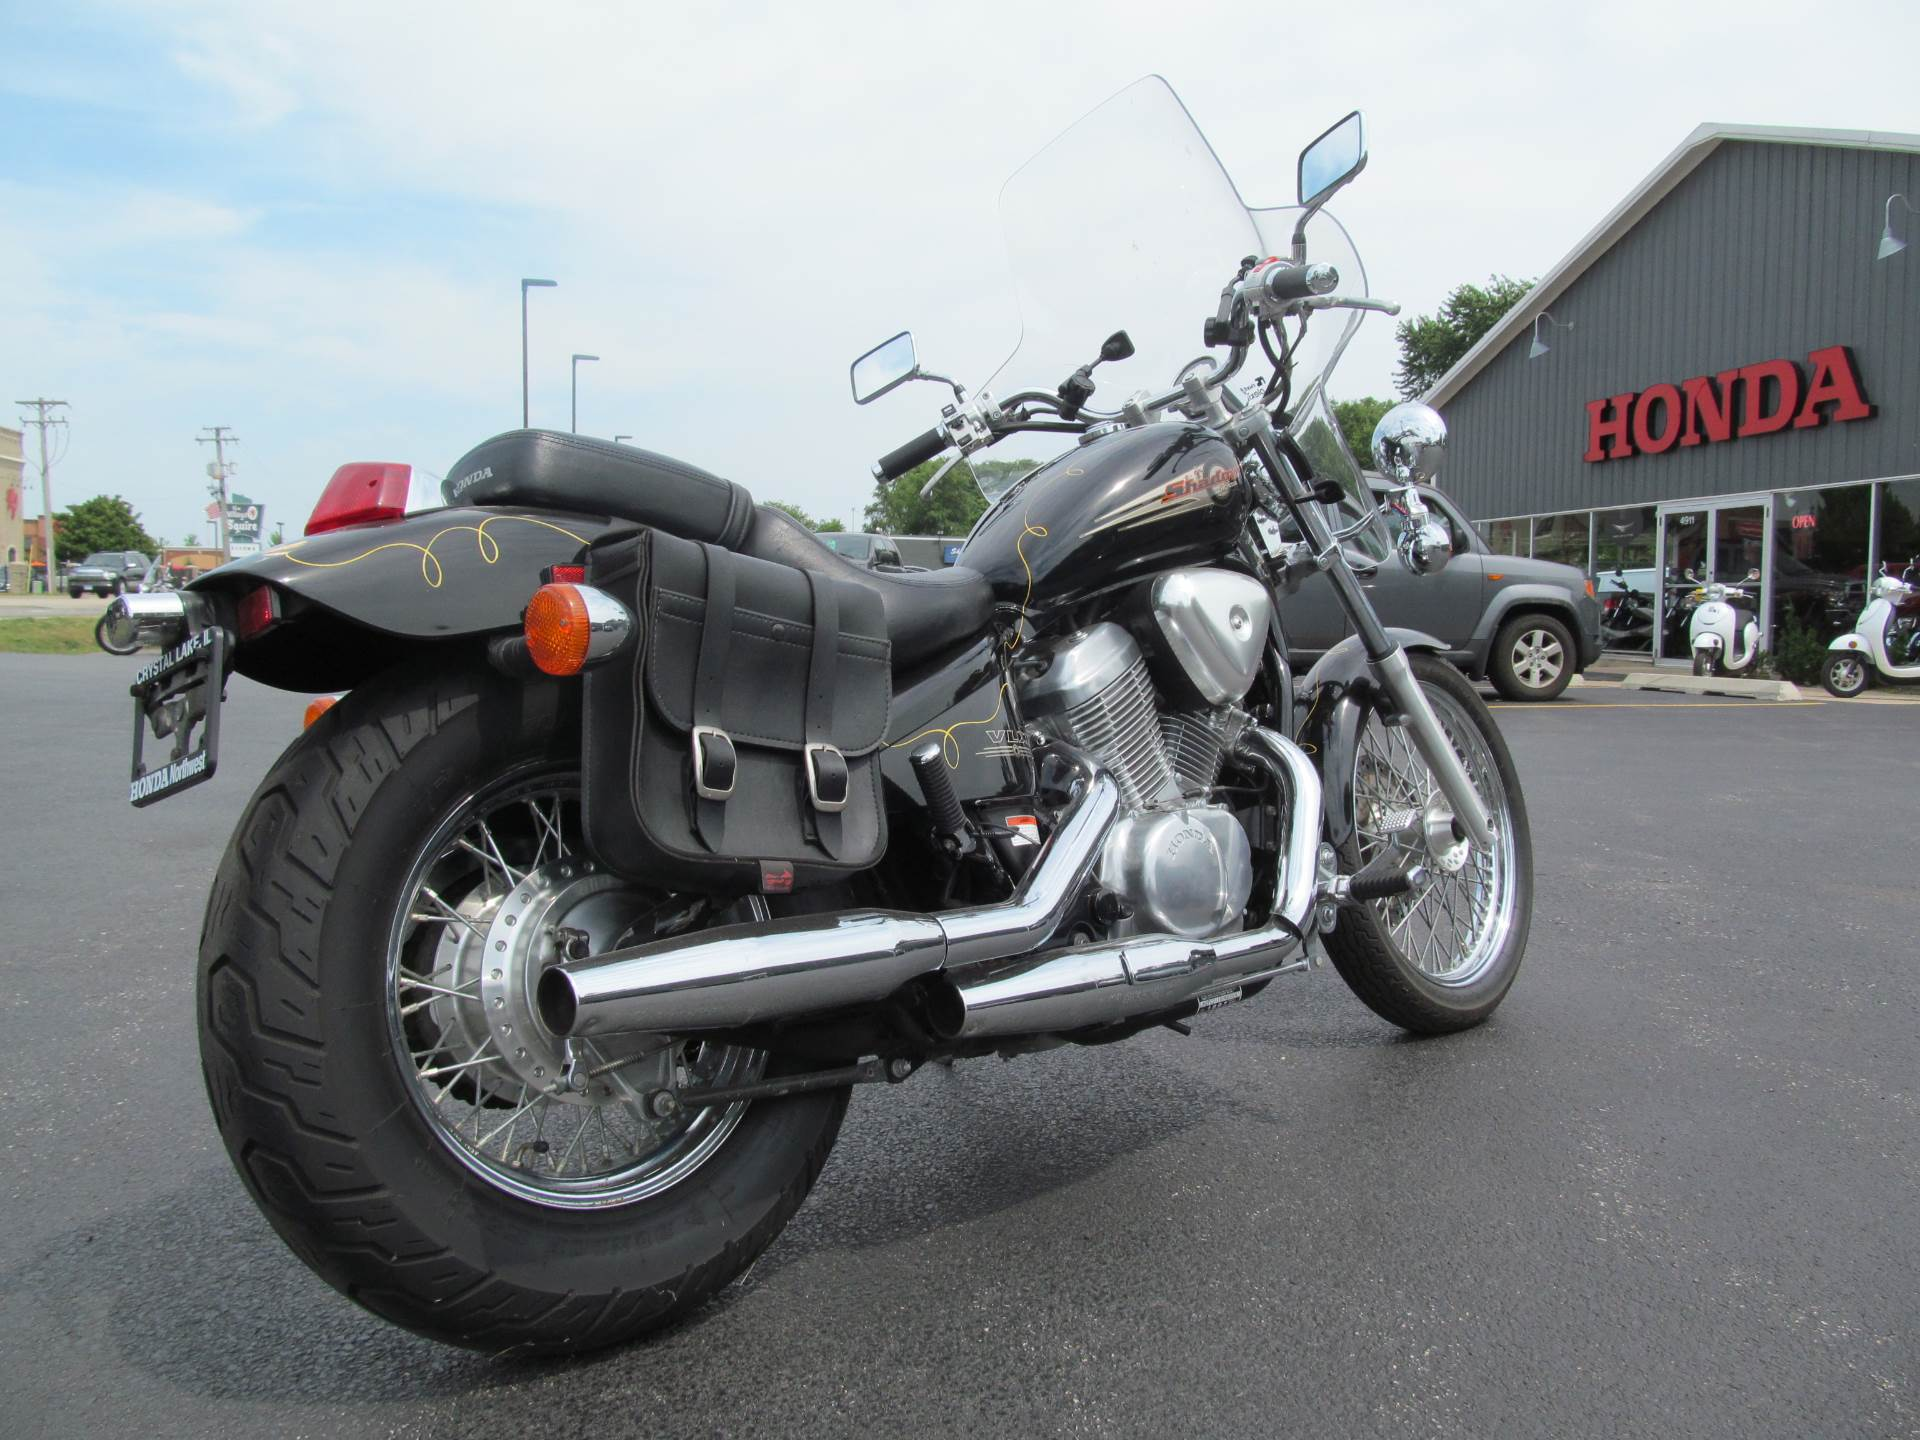 Used 1997 Honda Shadow Vlx Deluxe Motorcycles In Crystal Lake Il Fuel Filter Illinois